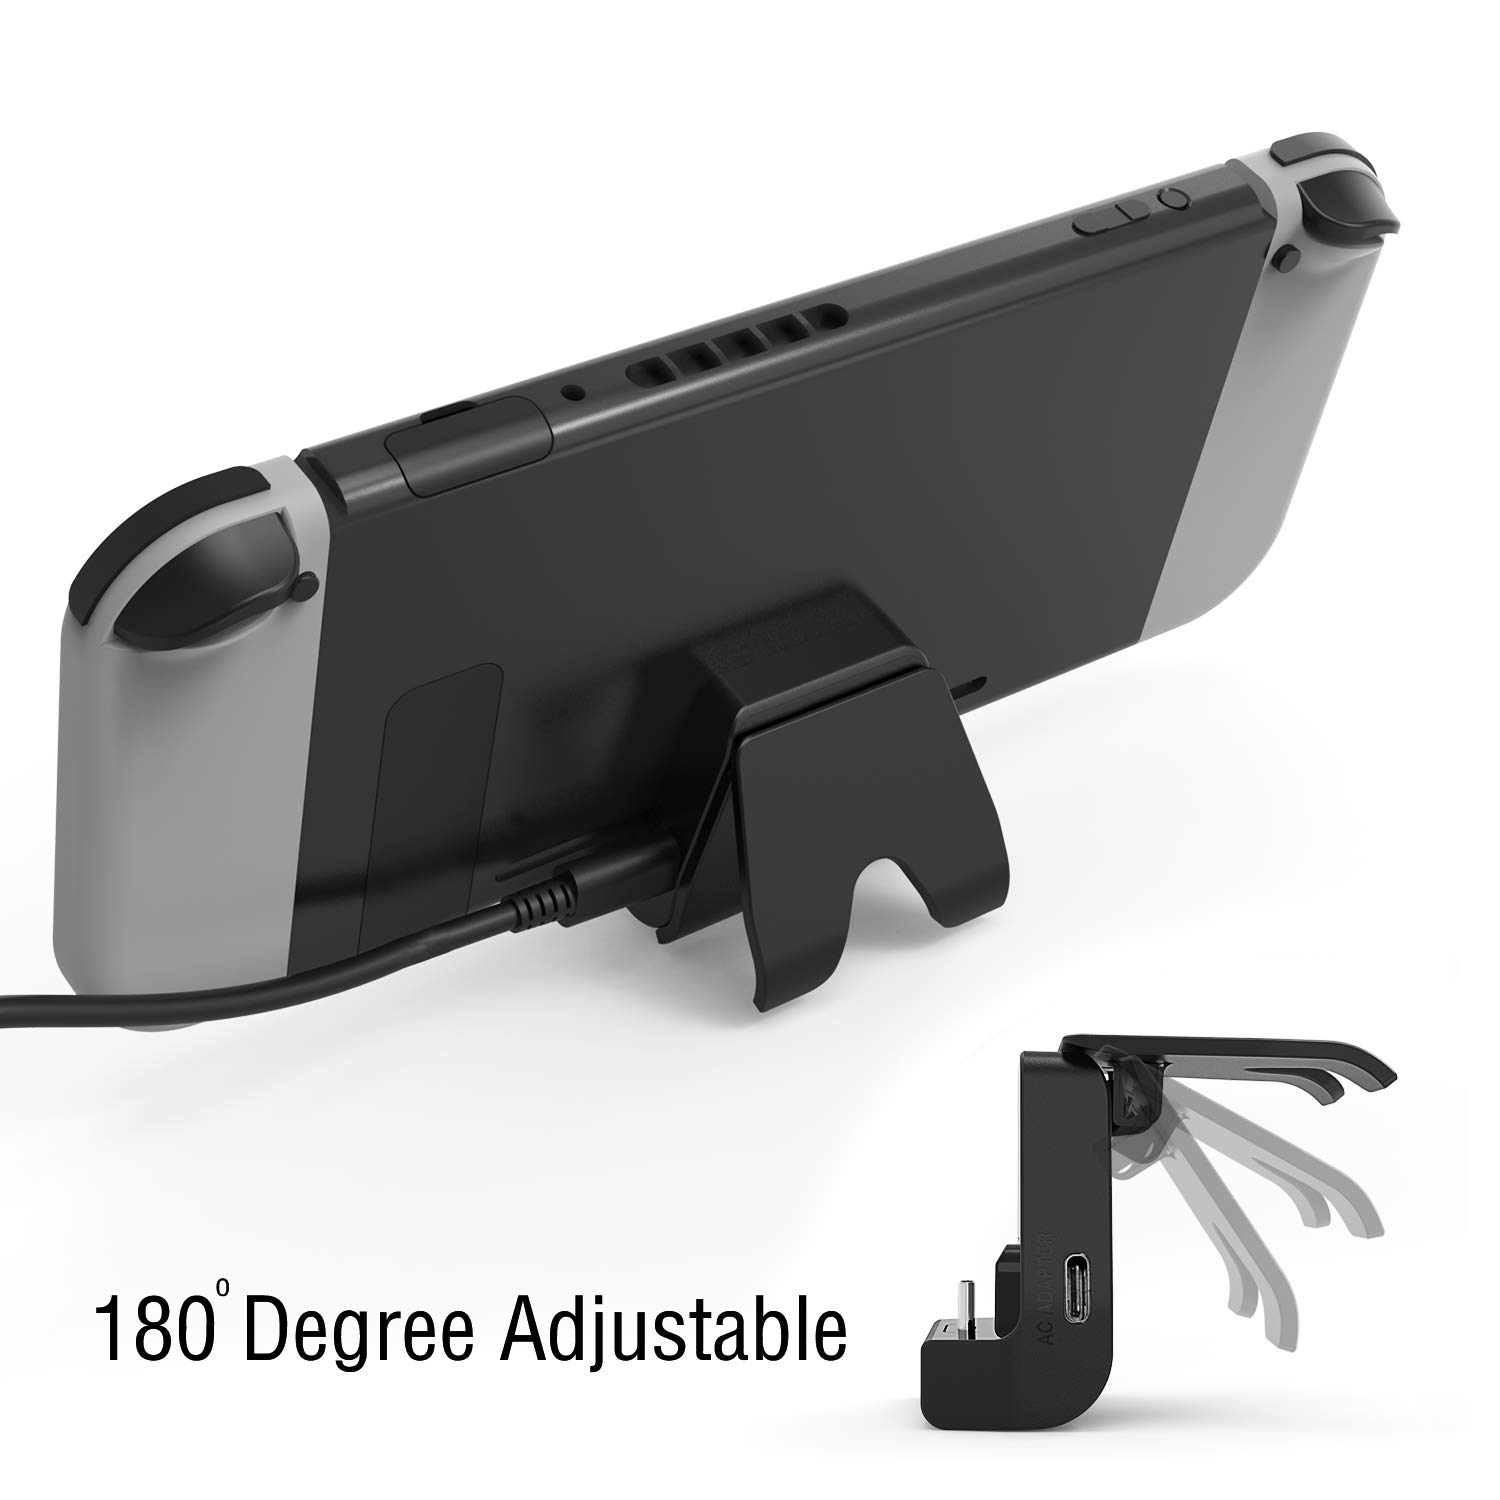 YCCSKY Versatile Adjustable Charging Stand Cradle Station Power Accessories for Nintendo Switch